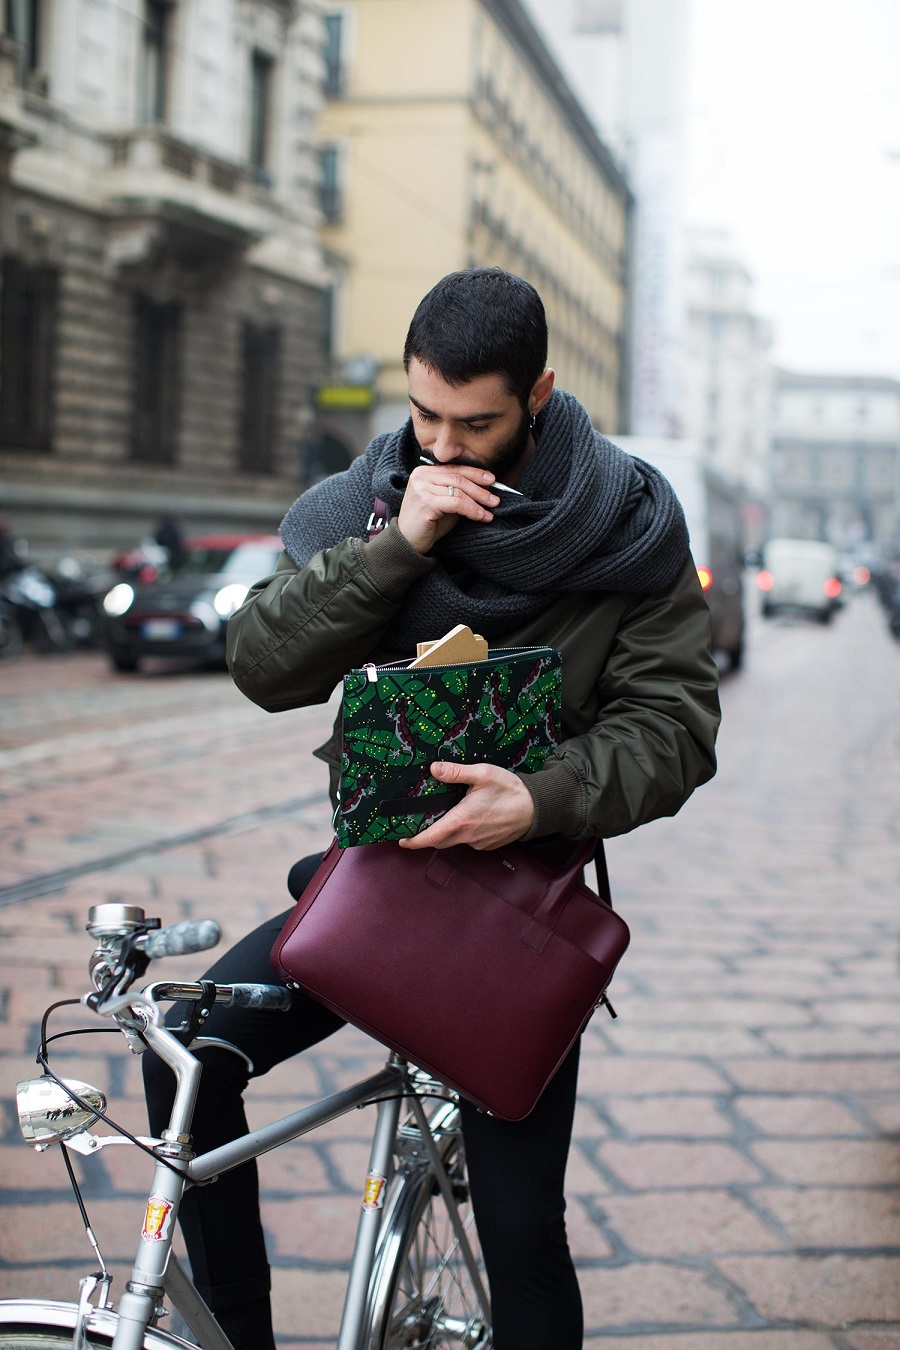 Furla brand unveils 2017 fall-winter collection at Pitti Uomo